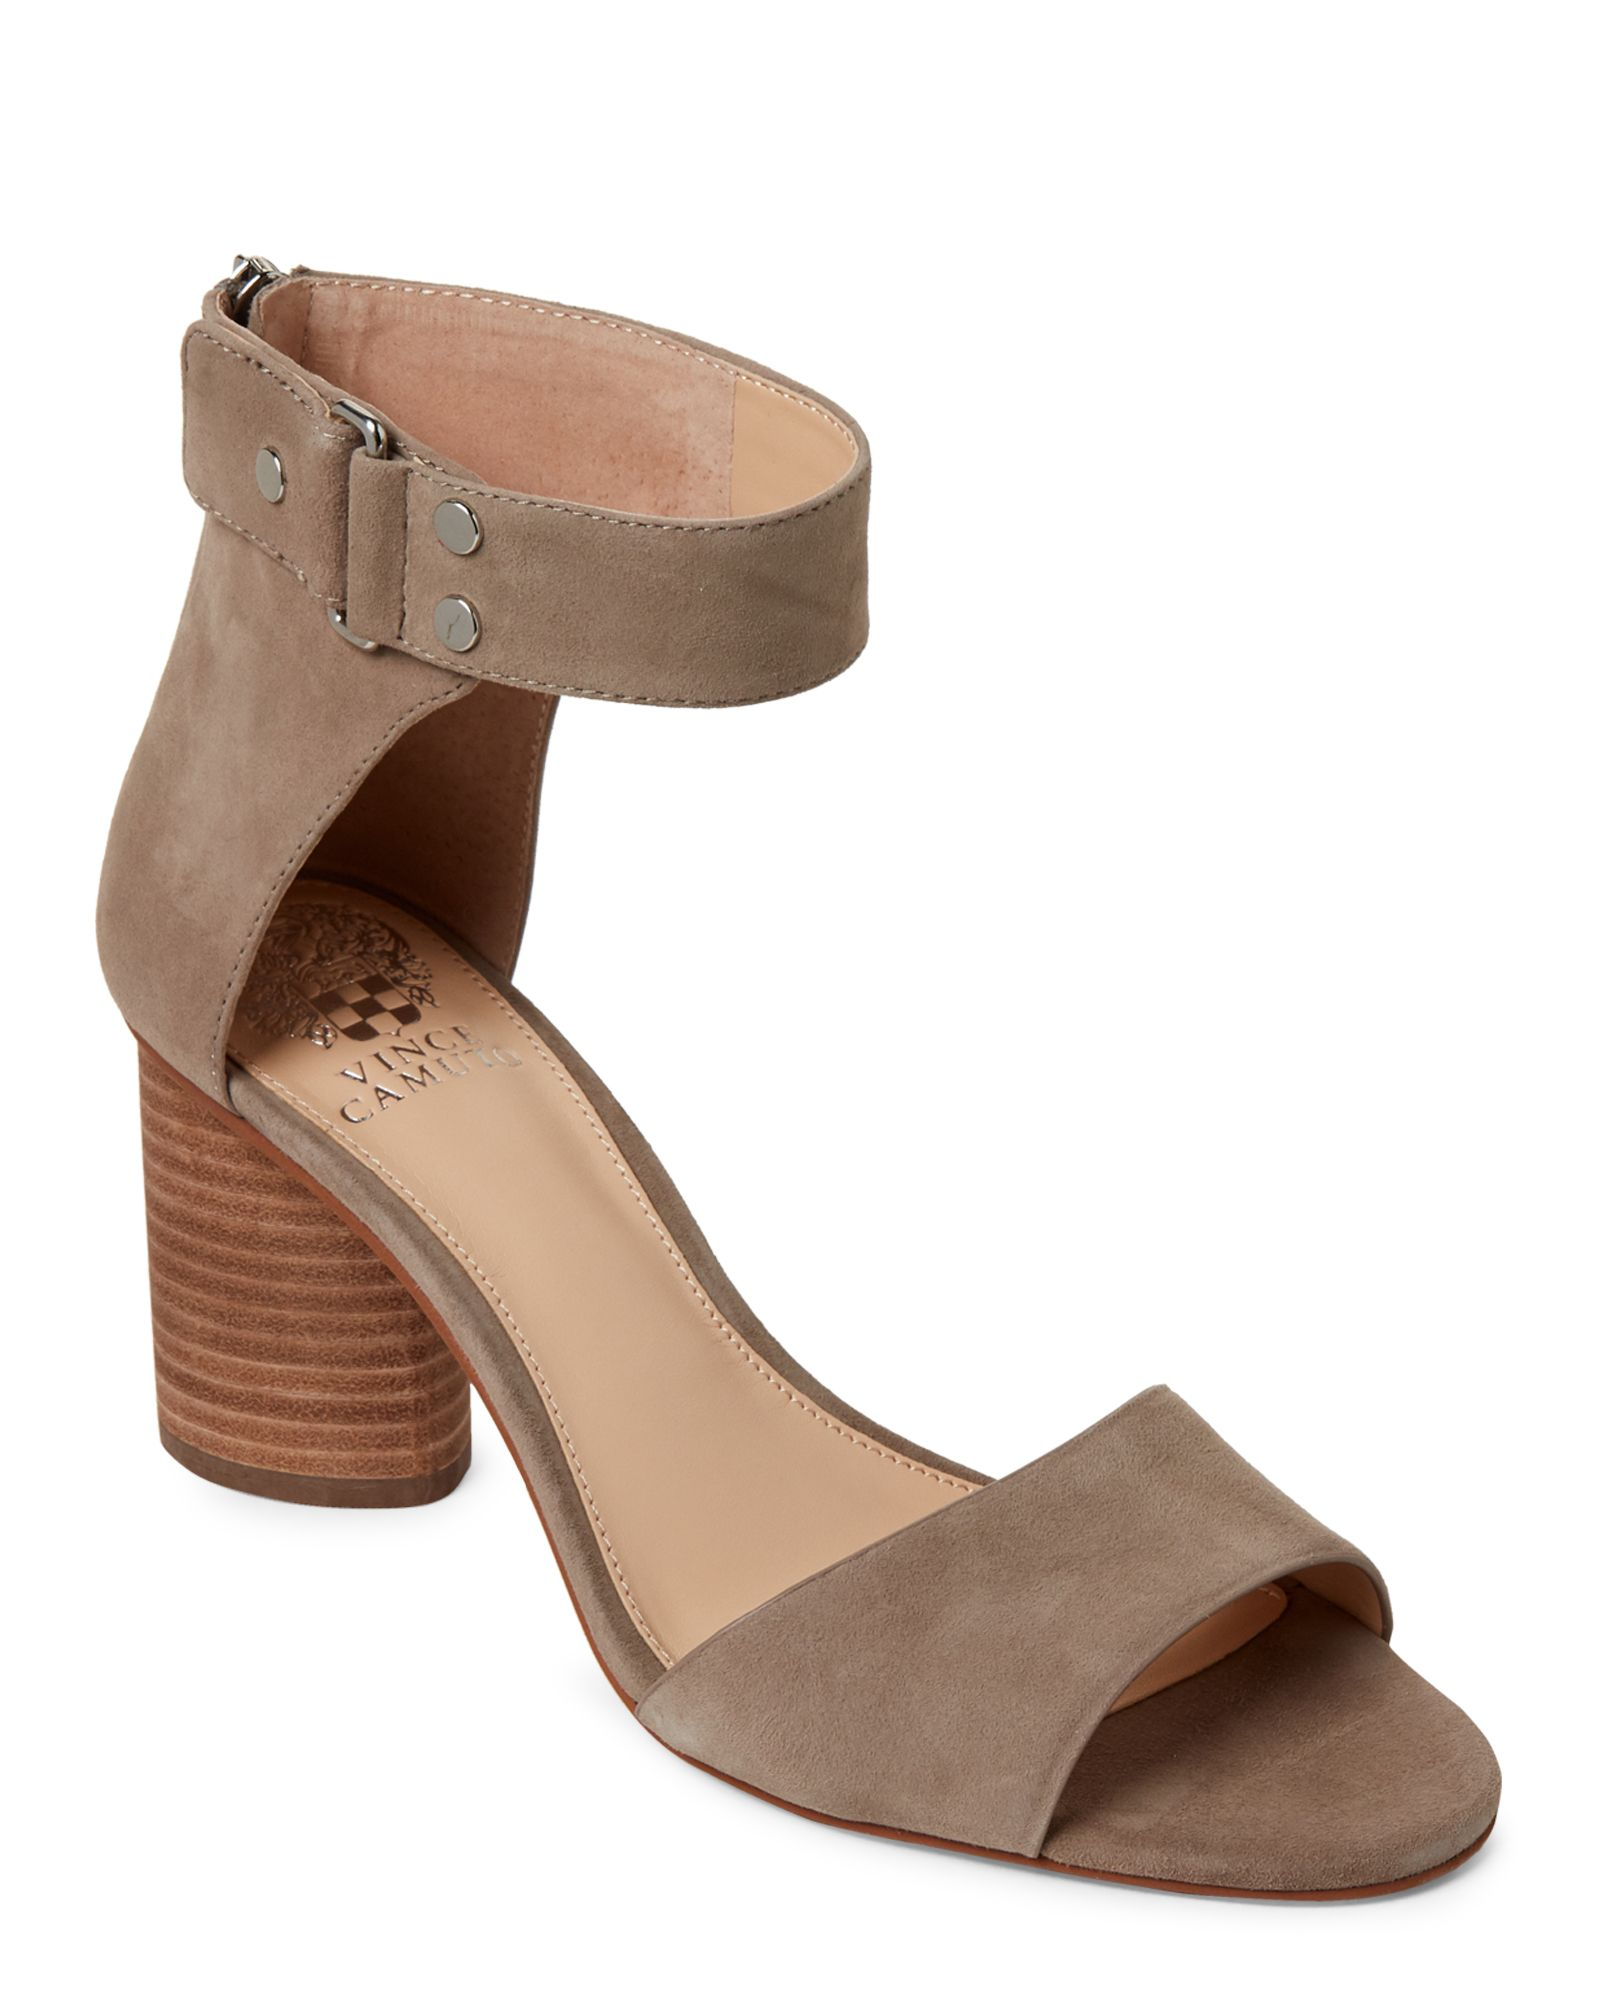 00f20b741 Vince Camuto Smoke Show Jannali Ankle Strap Suede Sandals | *Apparel ...